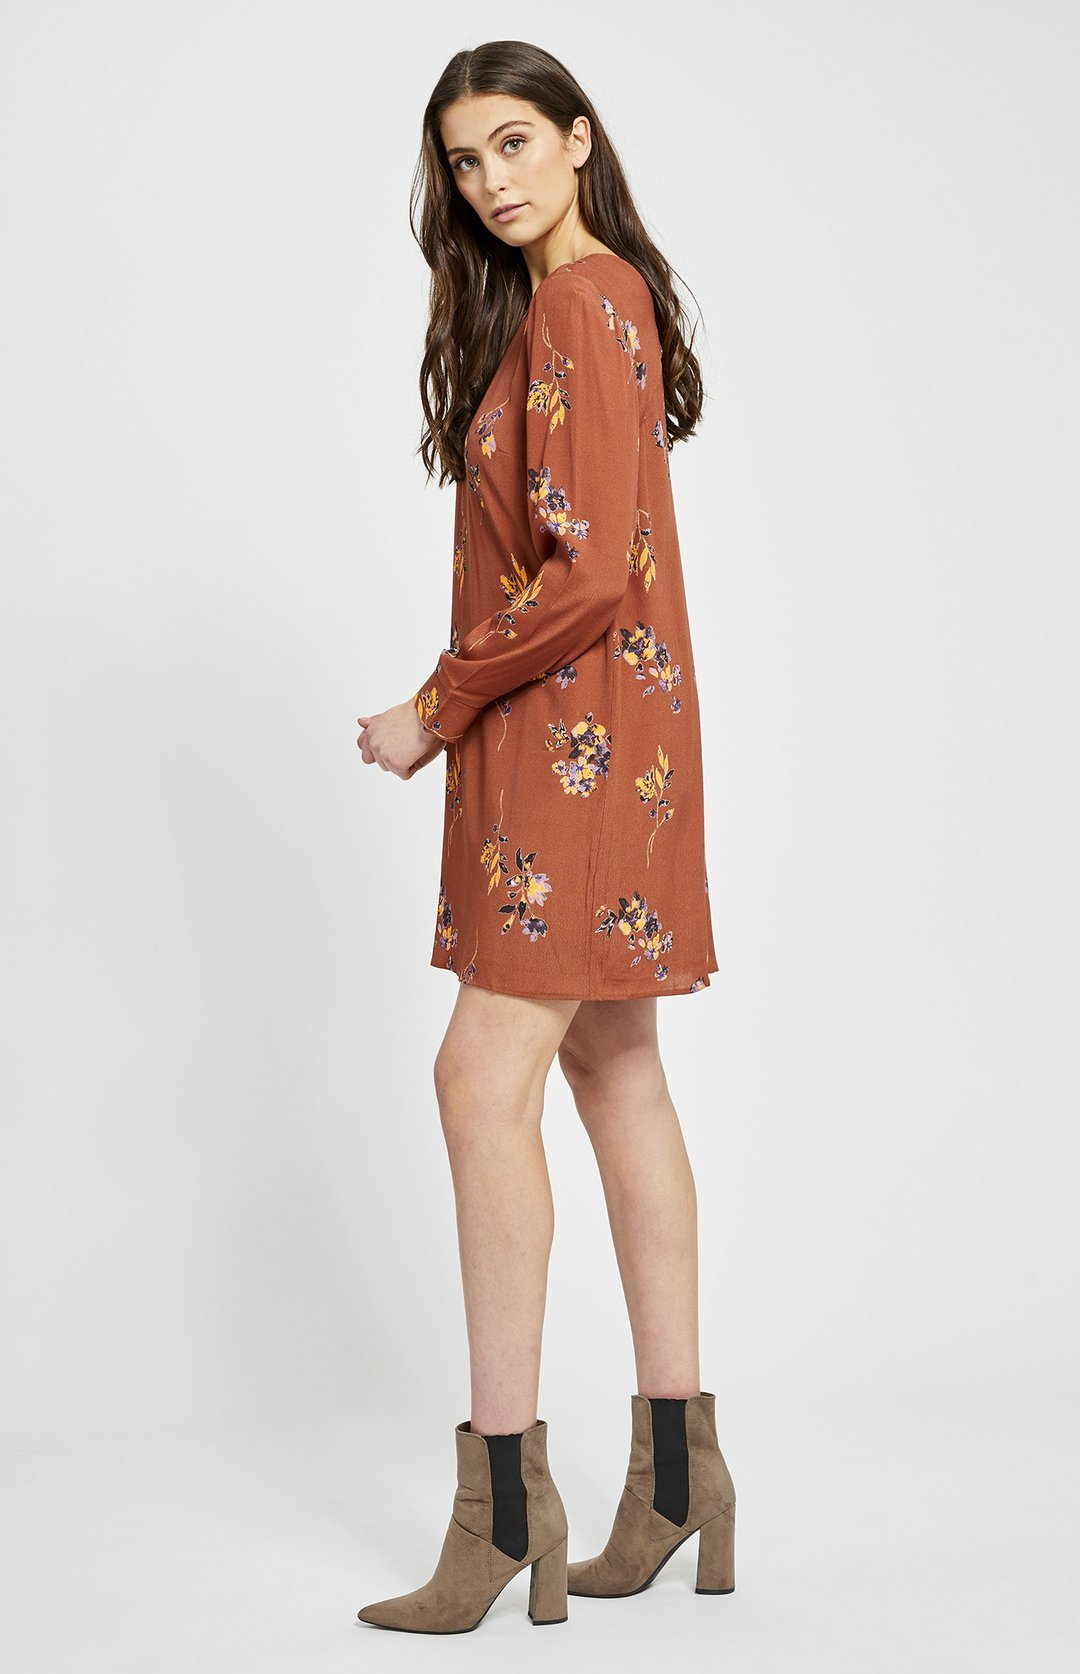 Inka Dress-Cocktail Dresses-Gentle Fawn-Coda & Cade